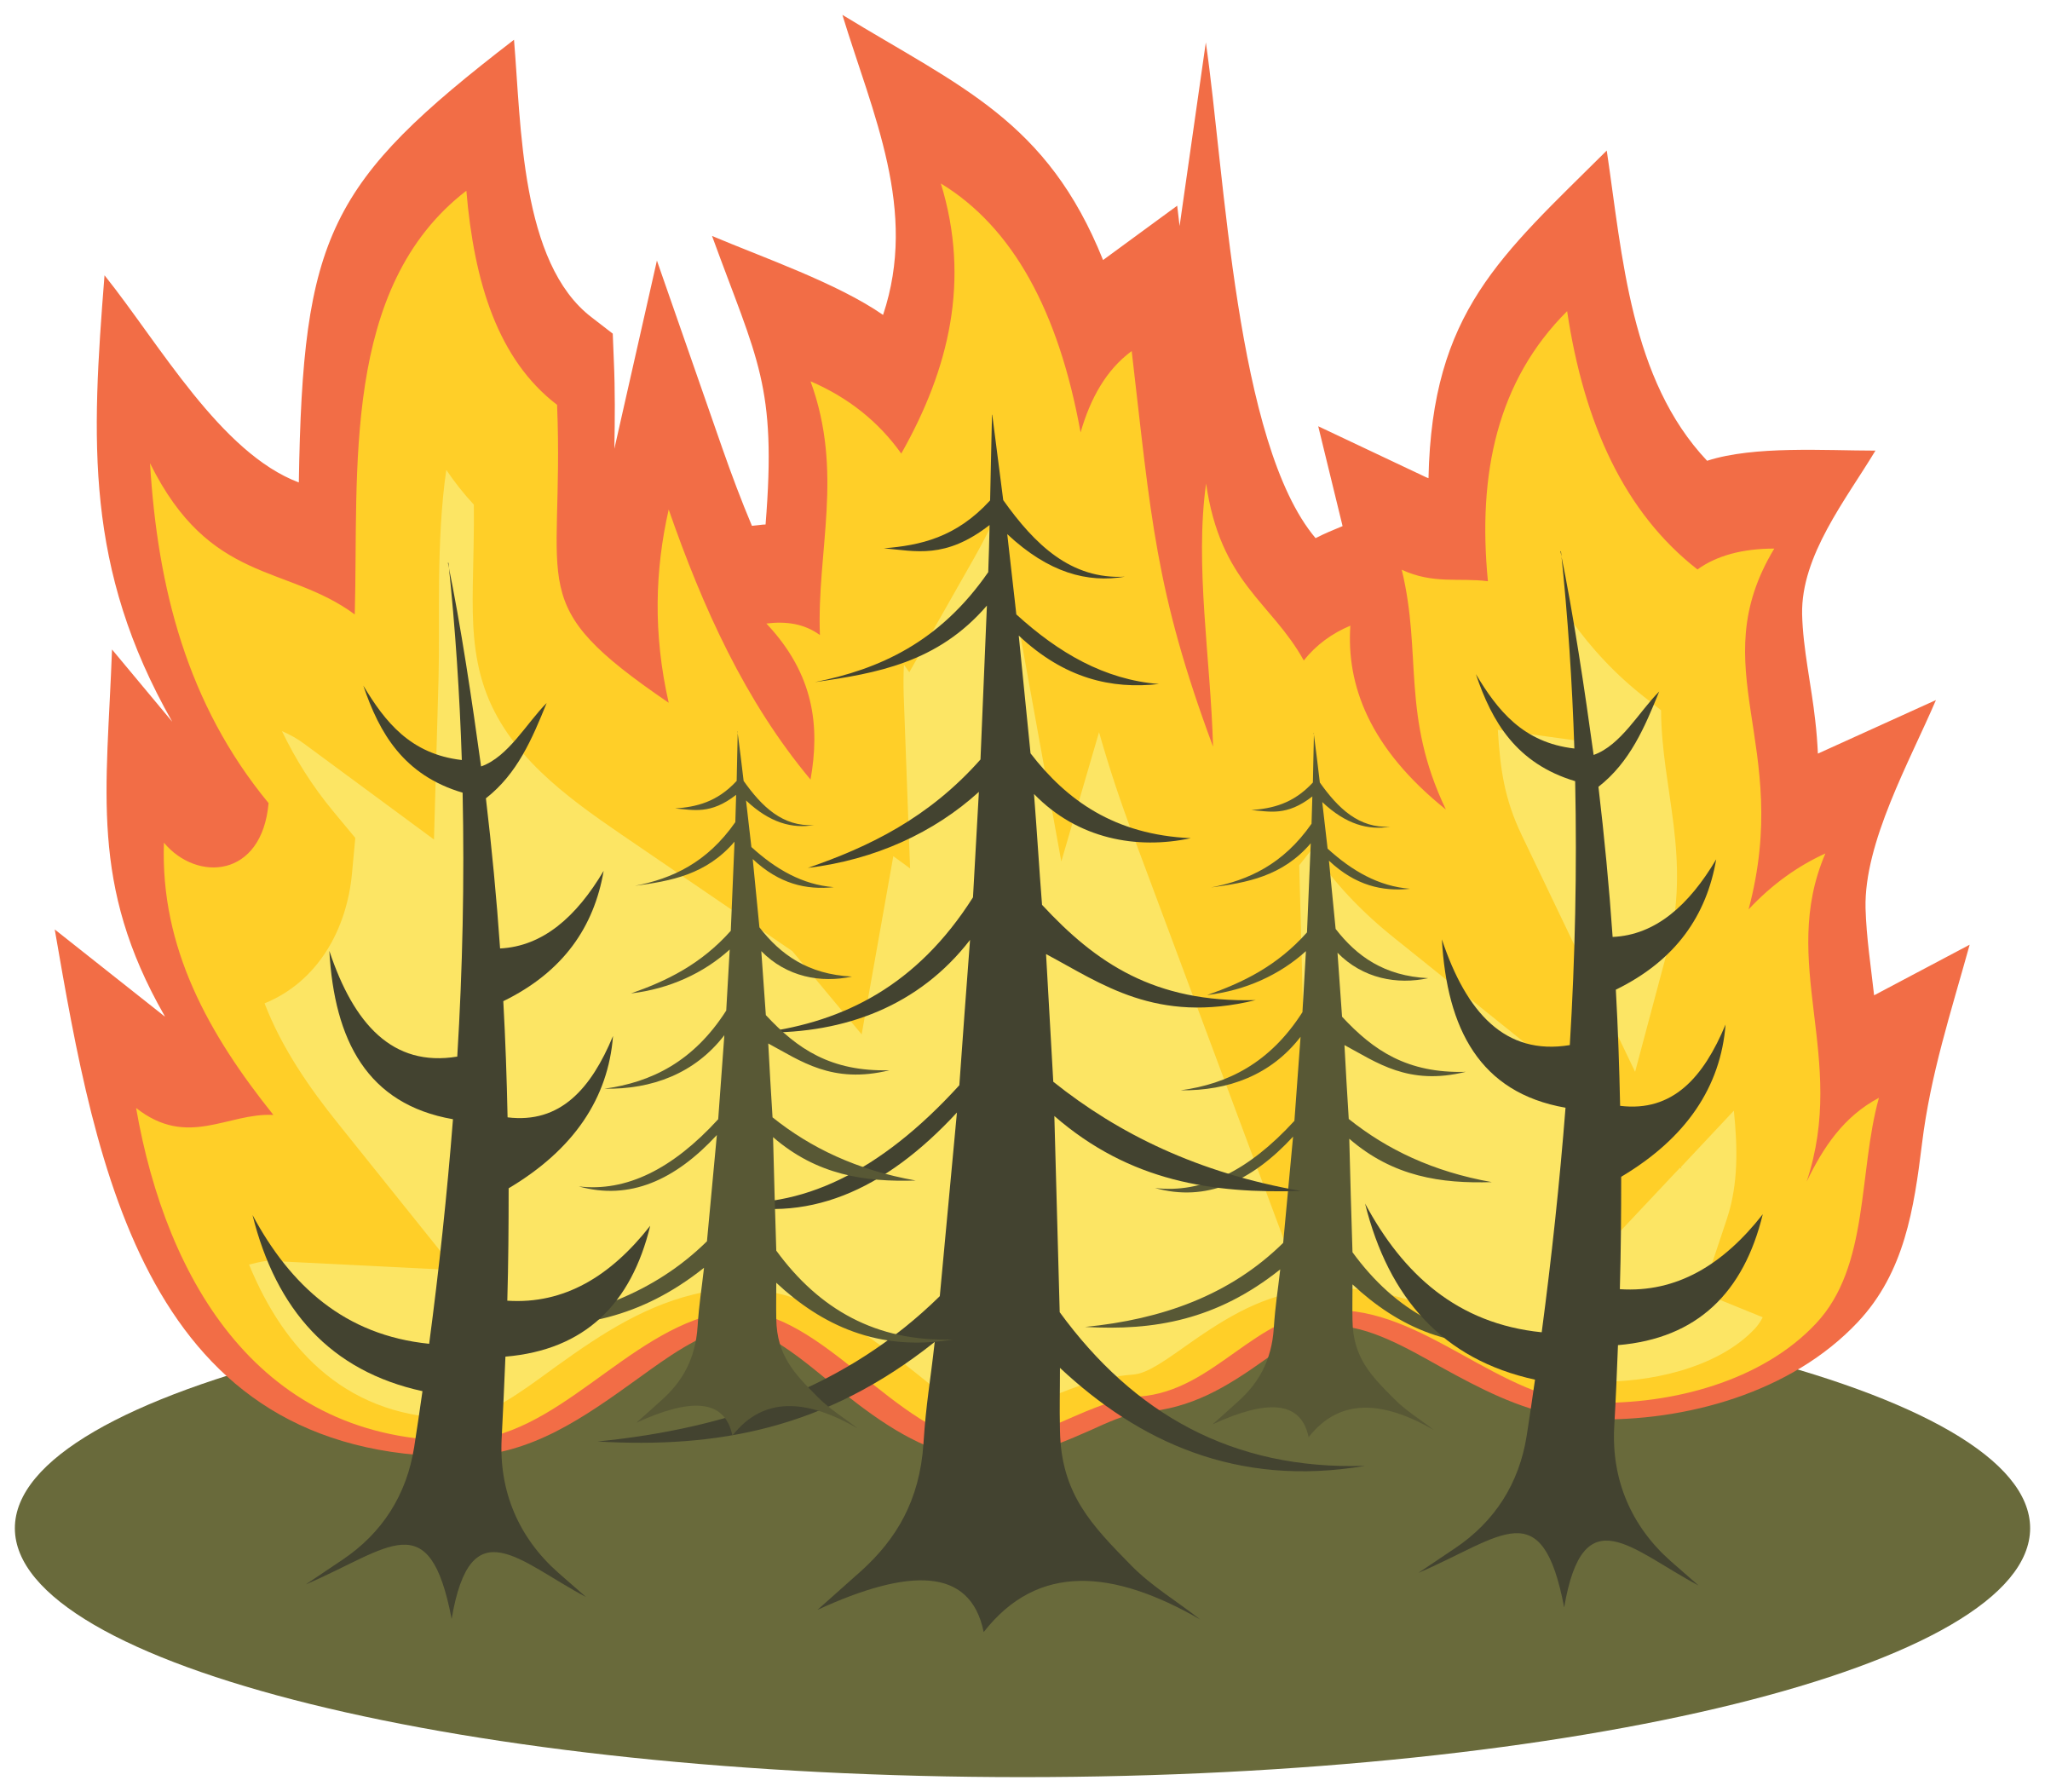 Forest fire by Juhele